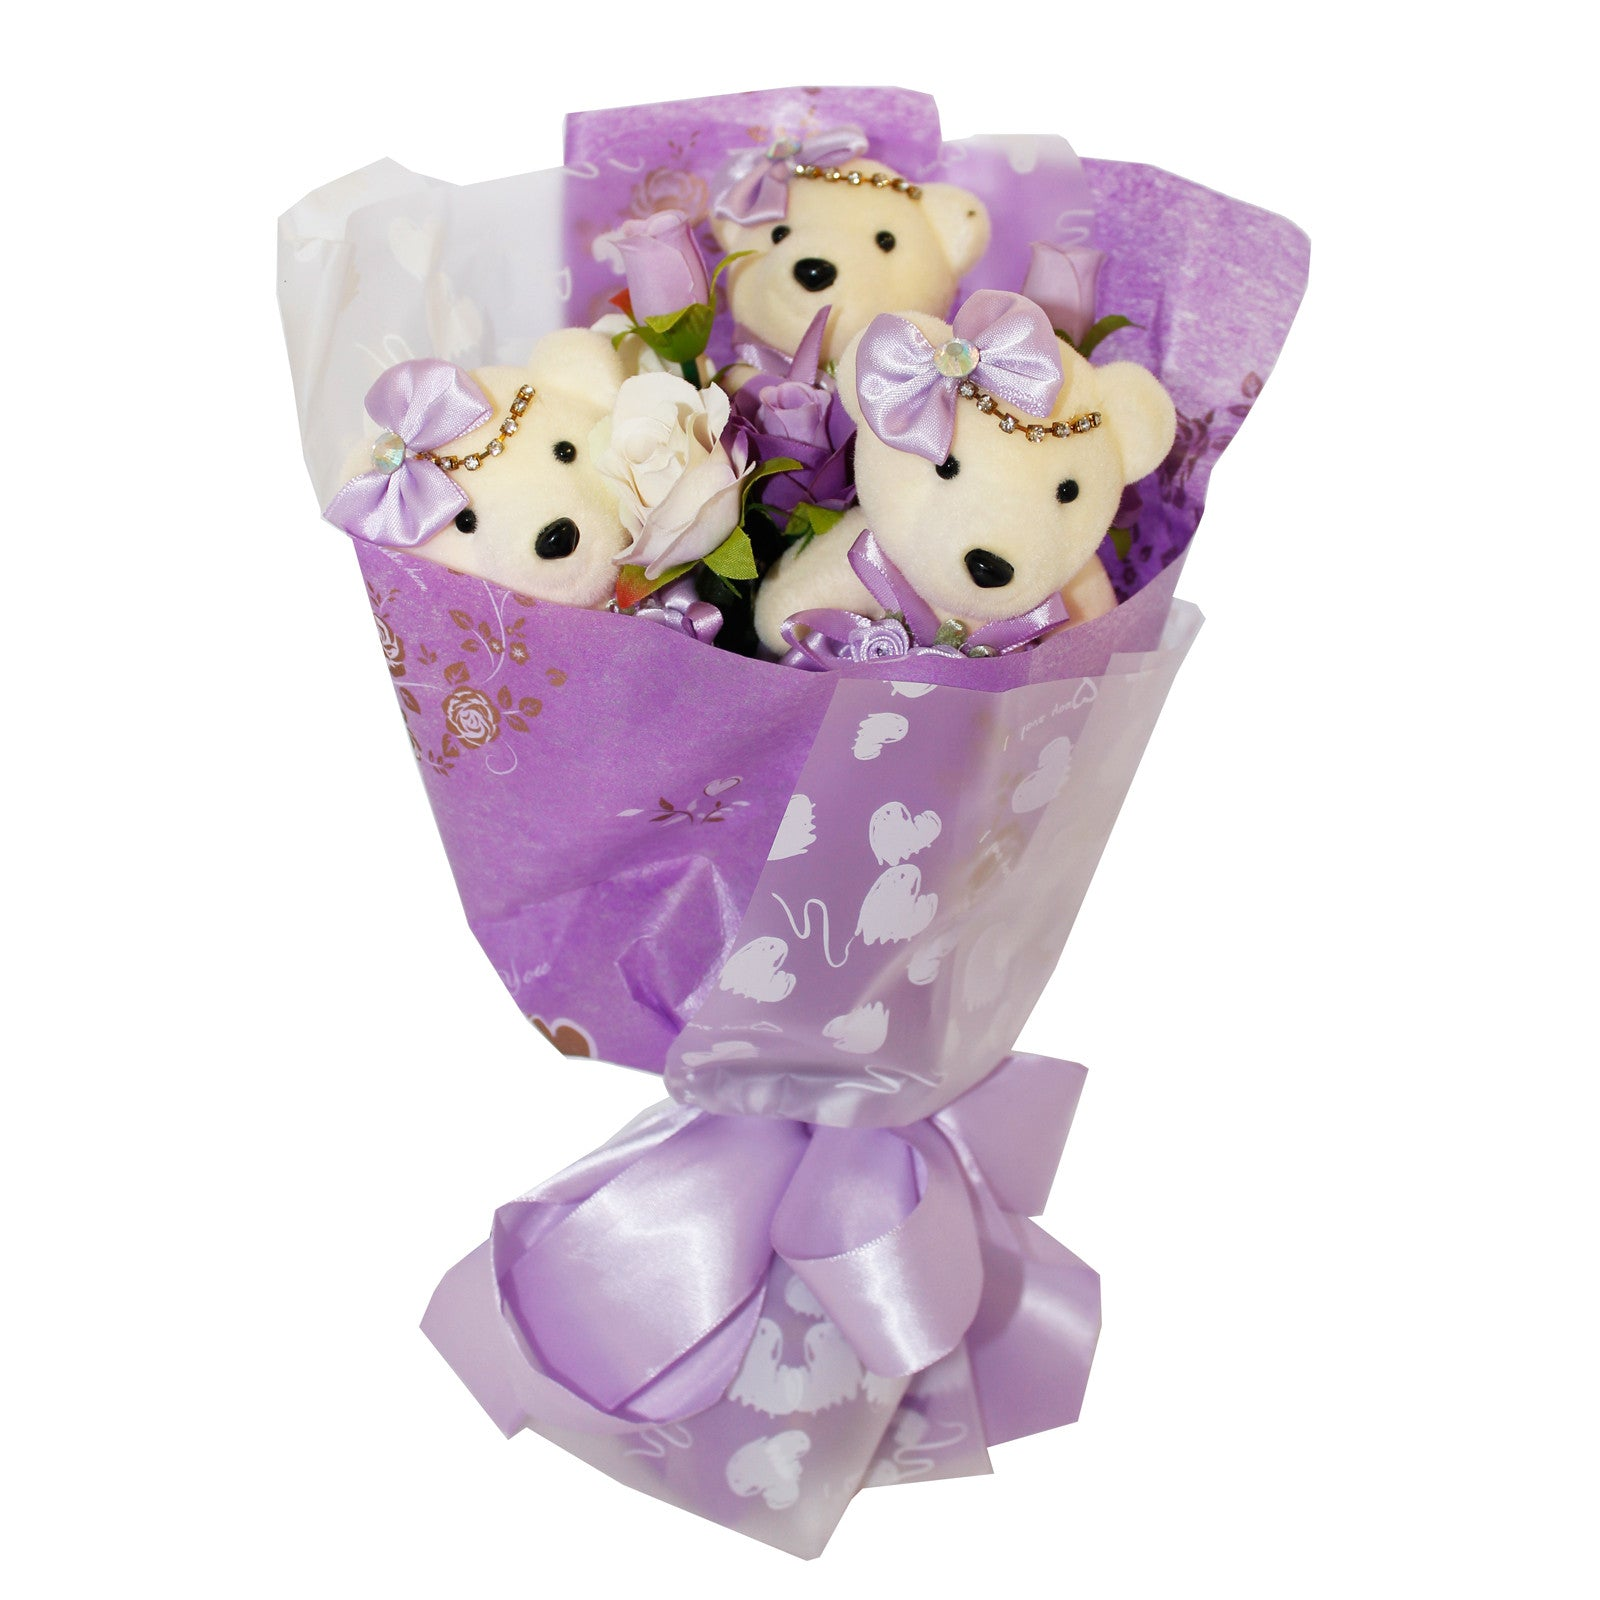 Special 3 Bear Flower Bouquet with Rhinestones Purple Design ...